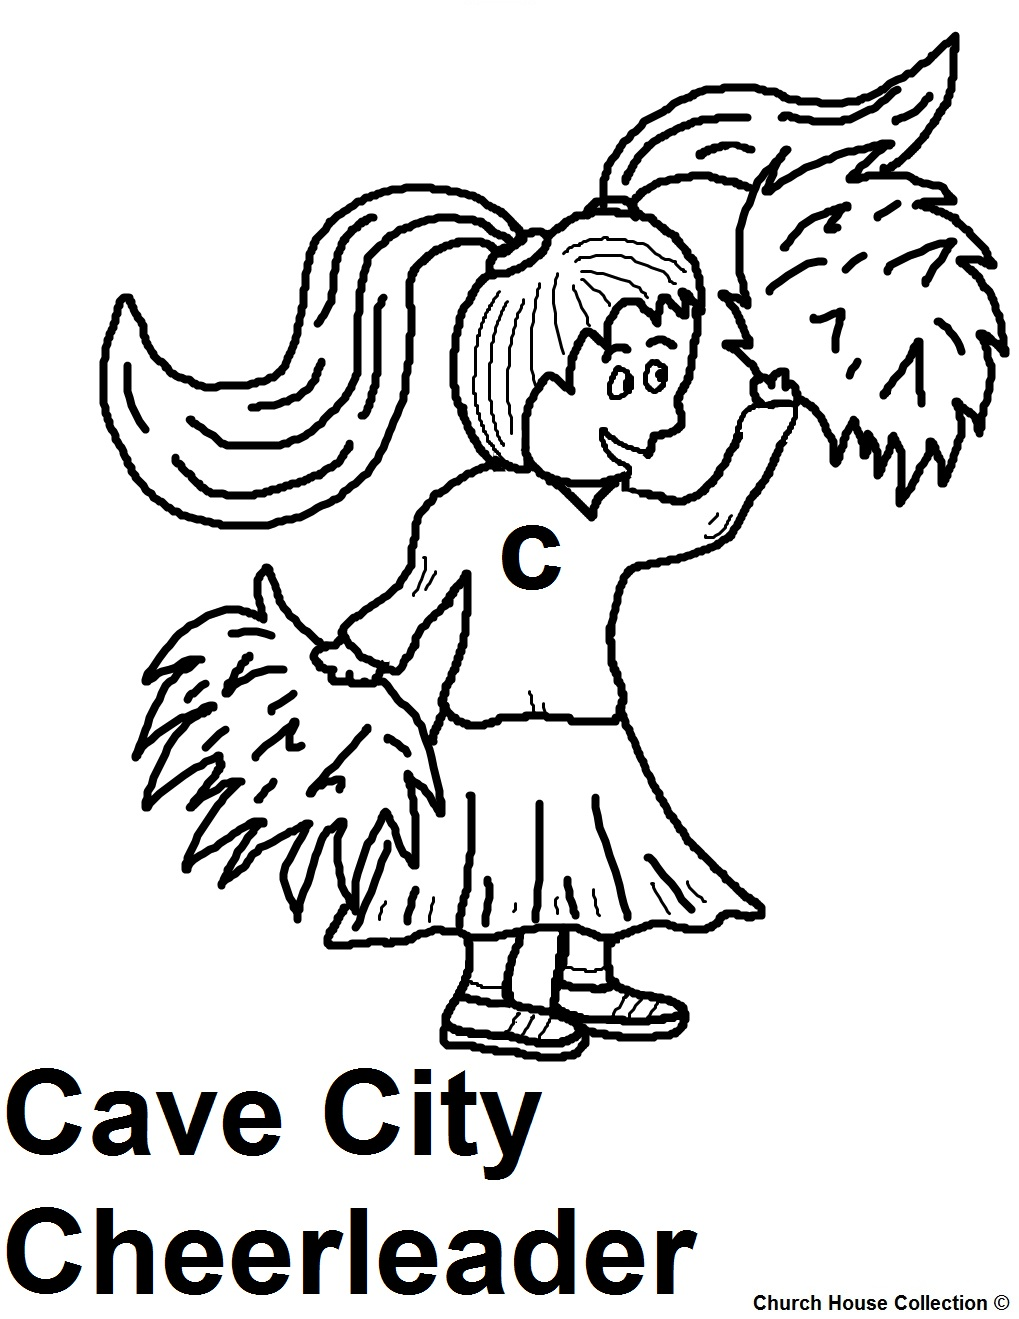 City caveman coloring pages amp other cave city school coloring pages